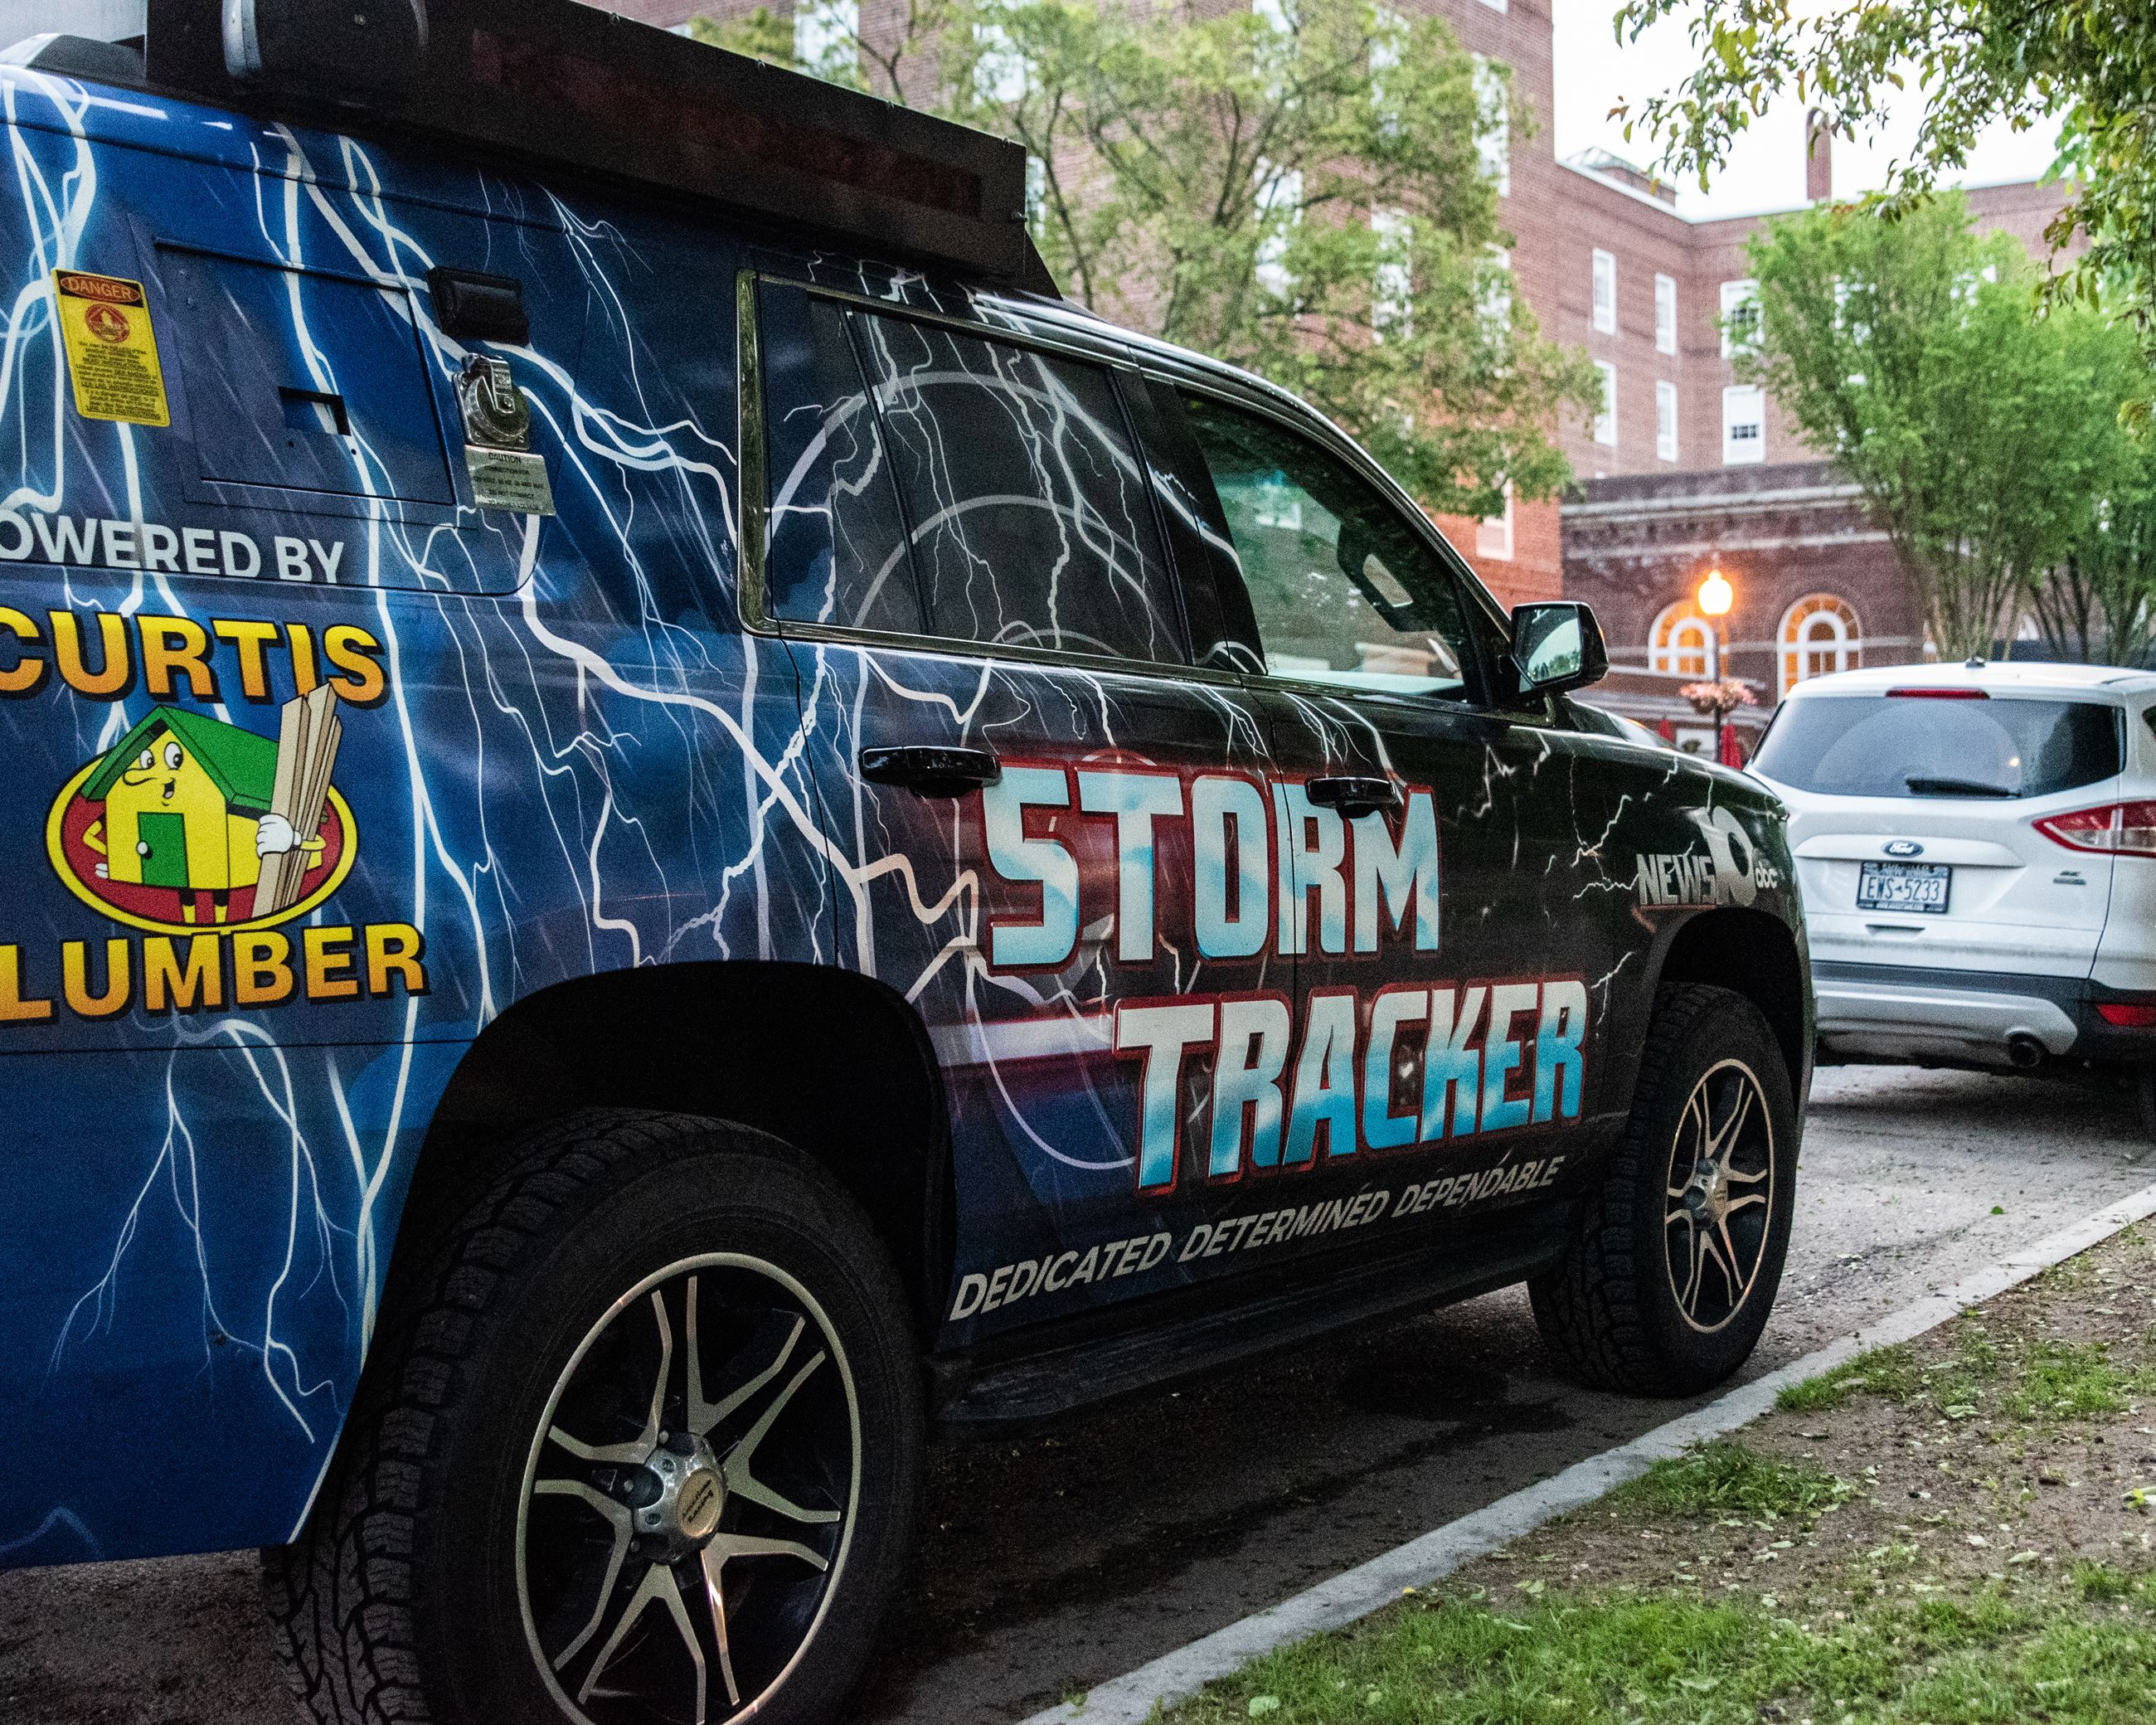 WTEN in the City Stormtracker